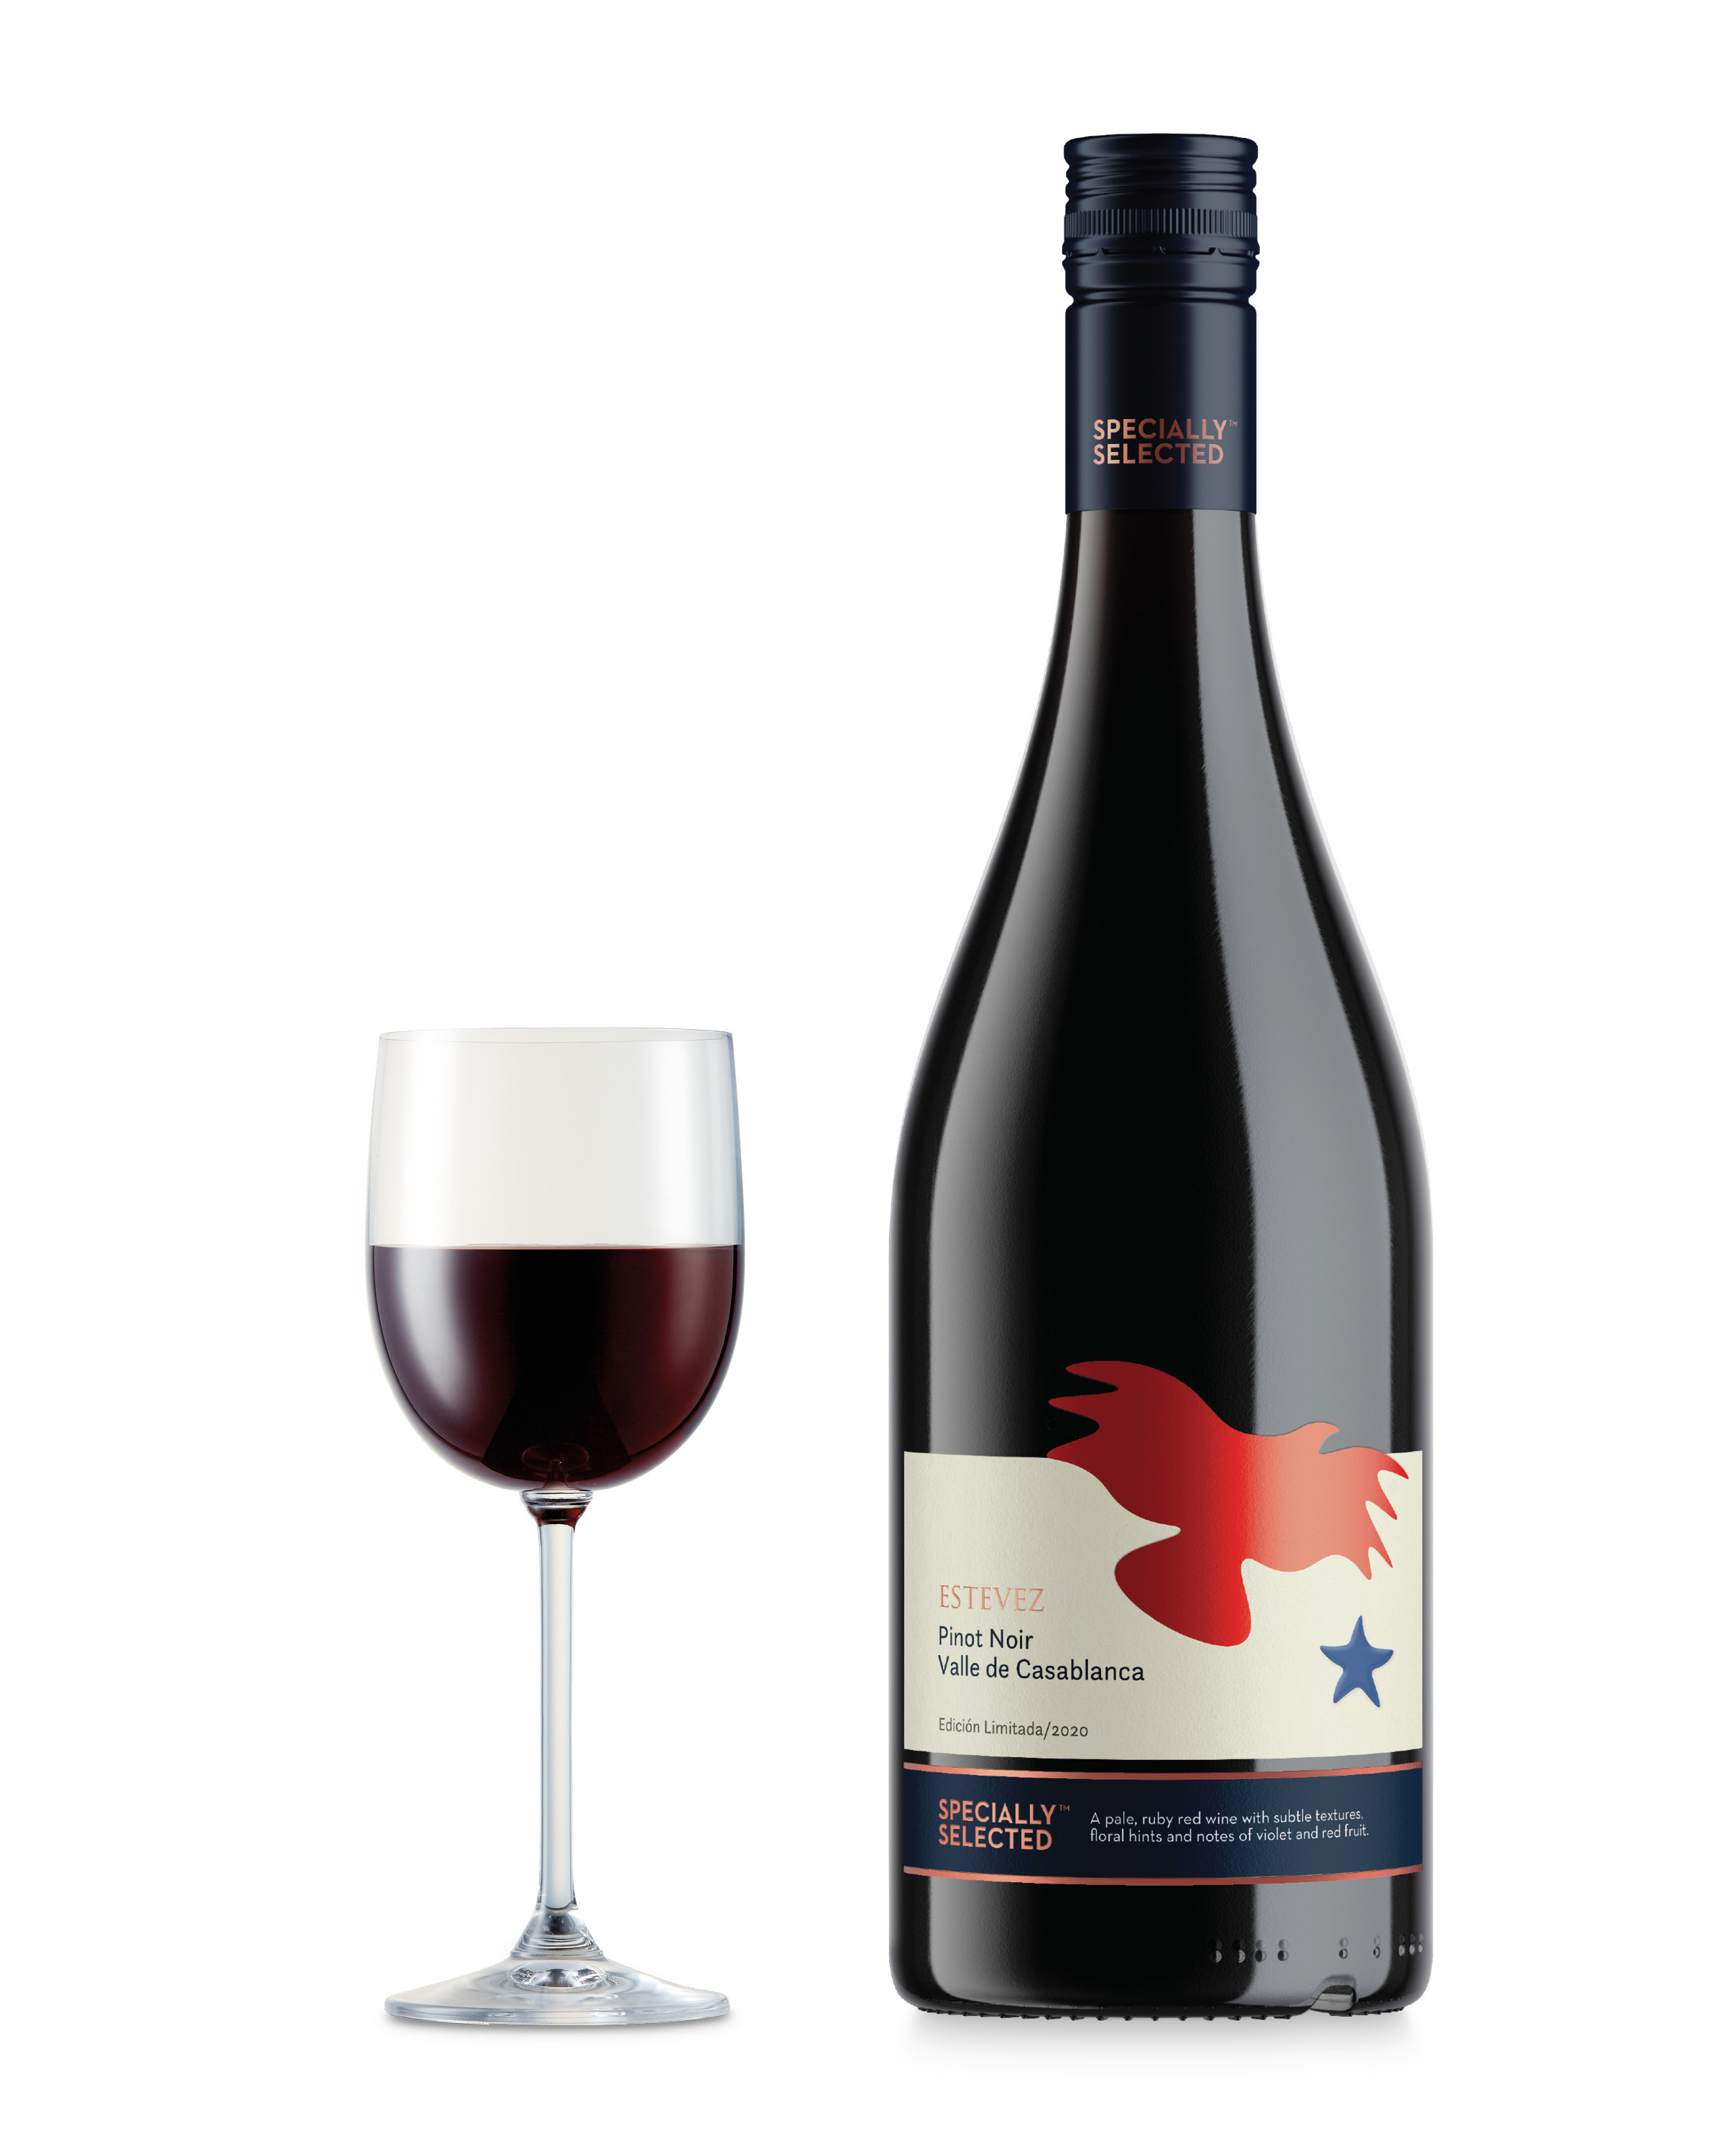 Specially Selected Pinot Noir